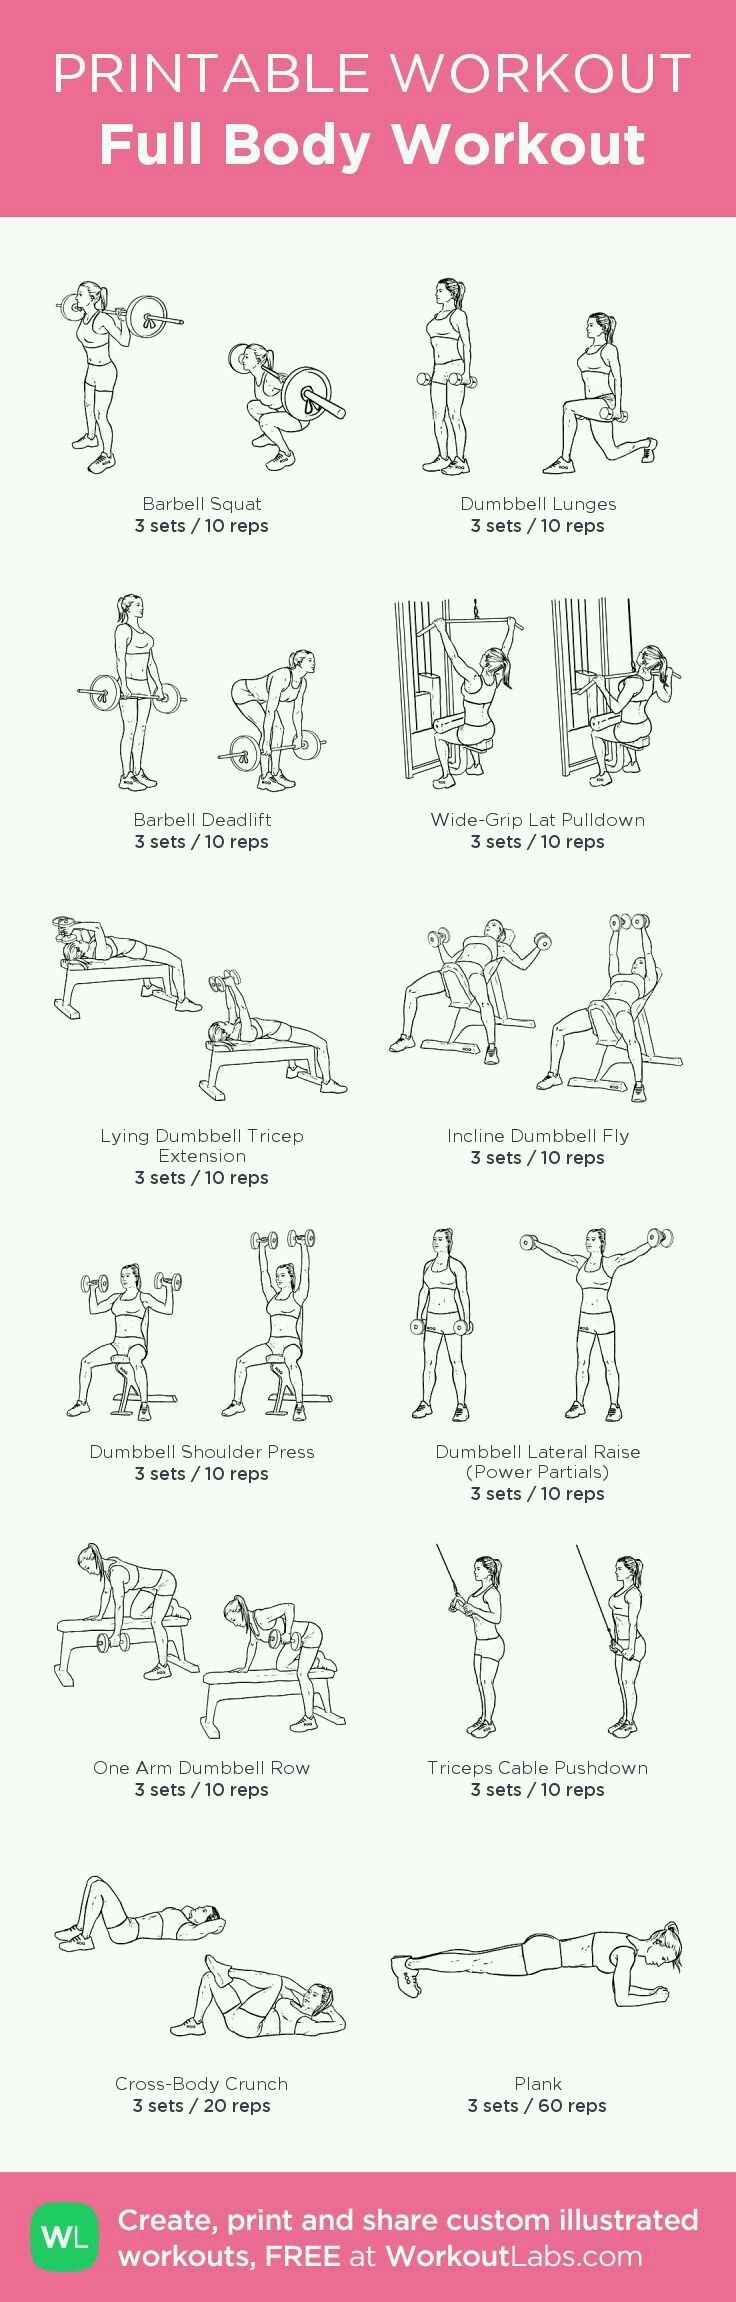 Pin by ana juarez on Exercise | Pinterest | Fitness, Workout